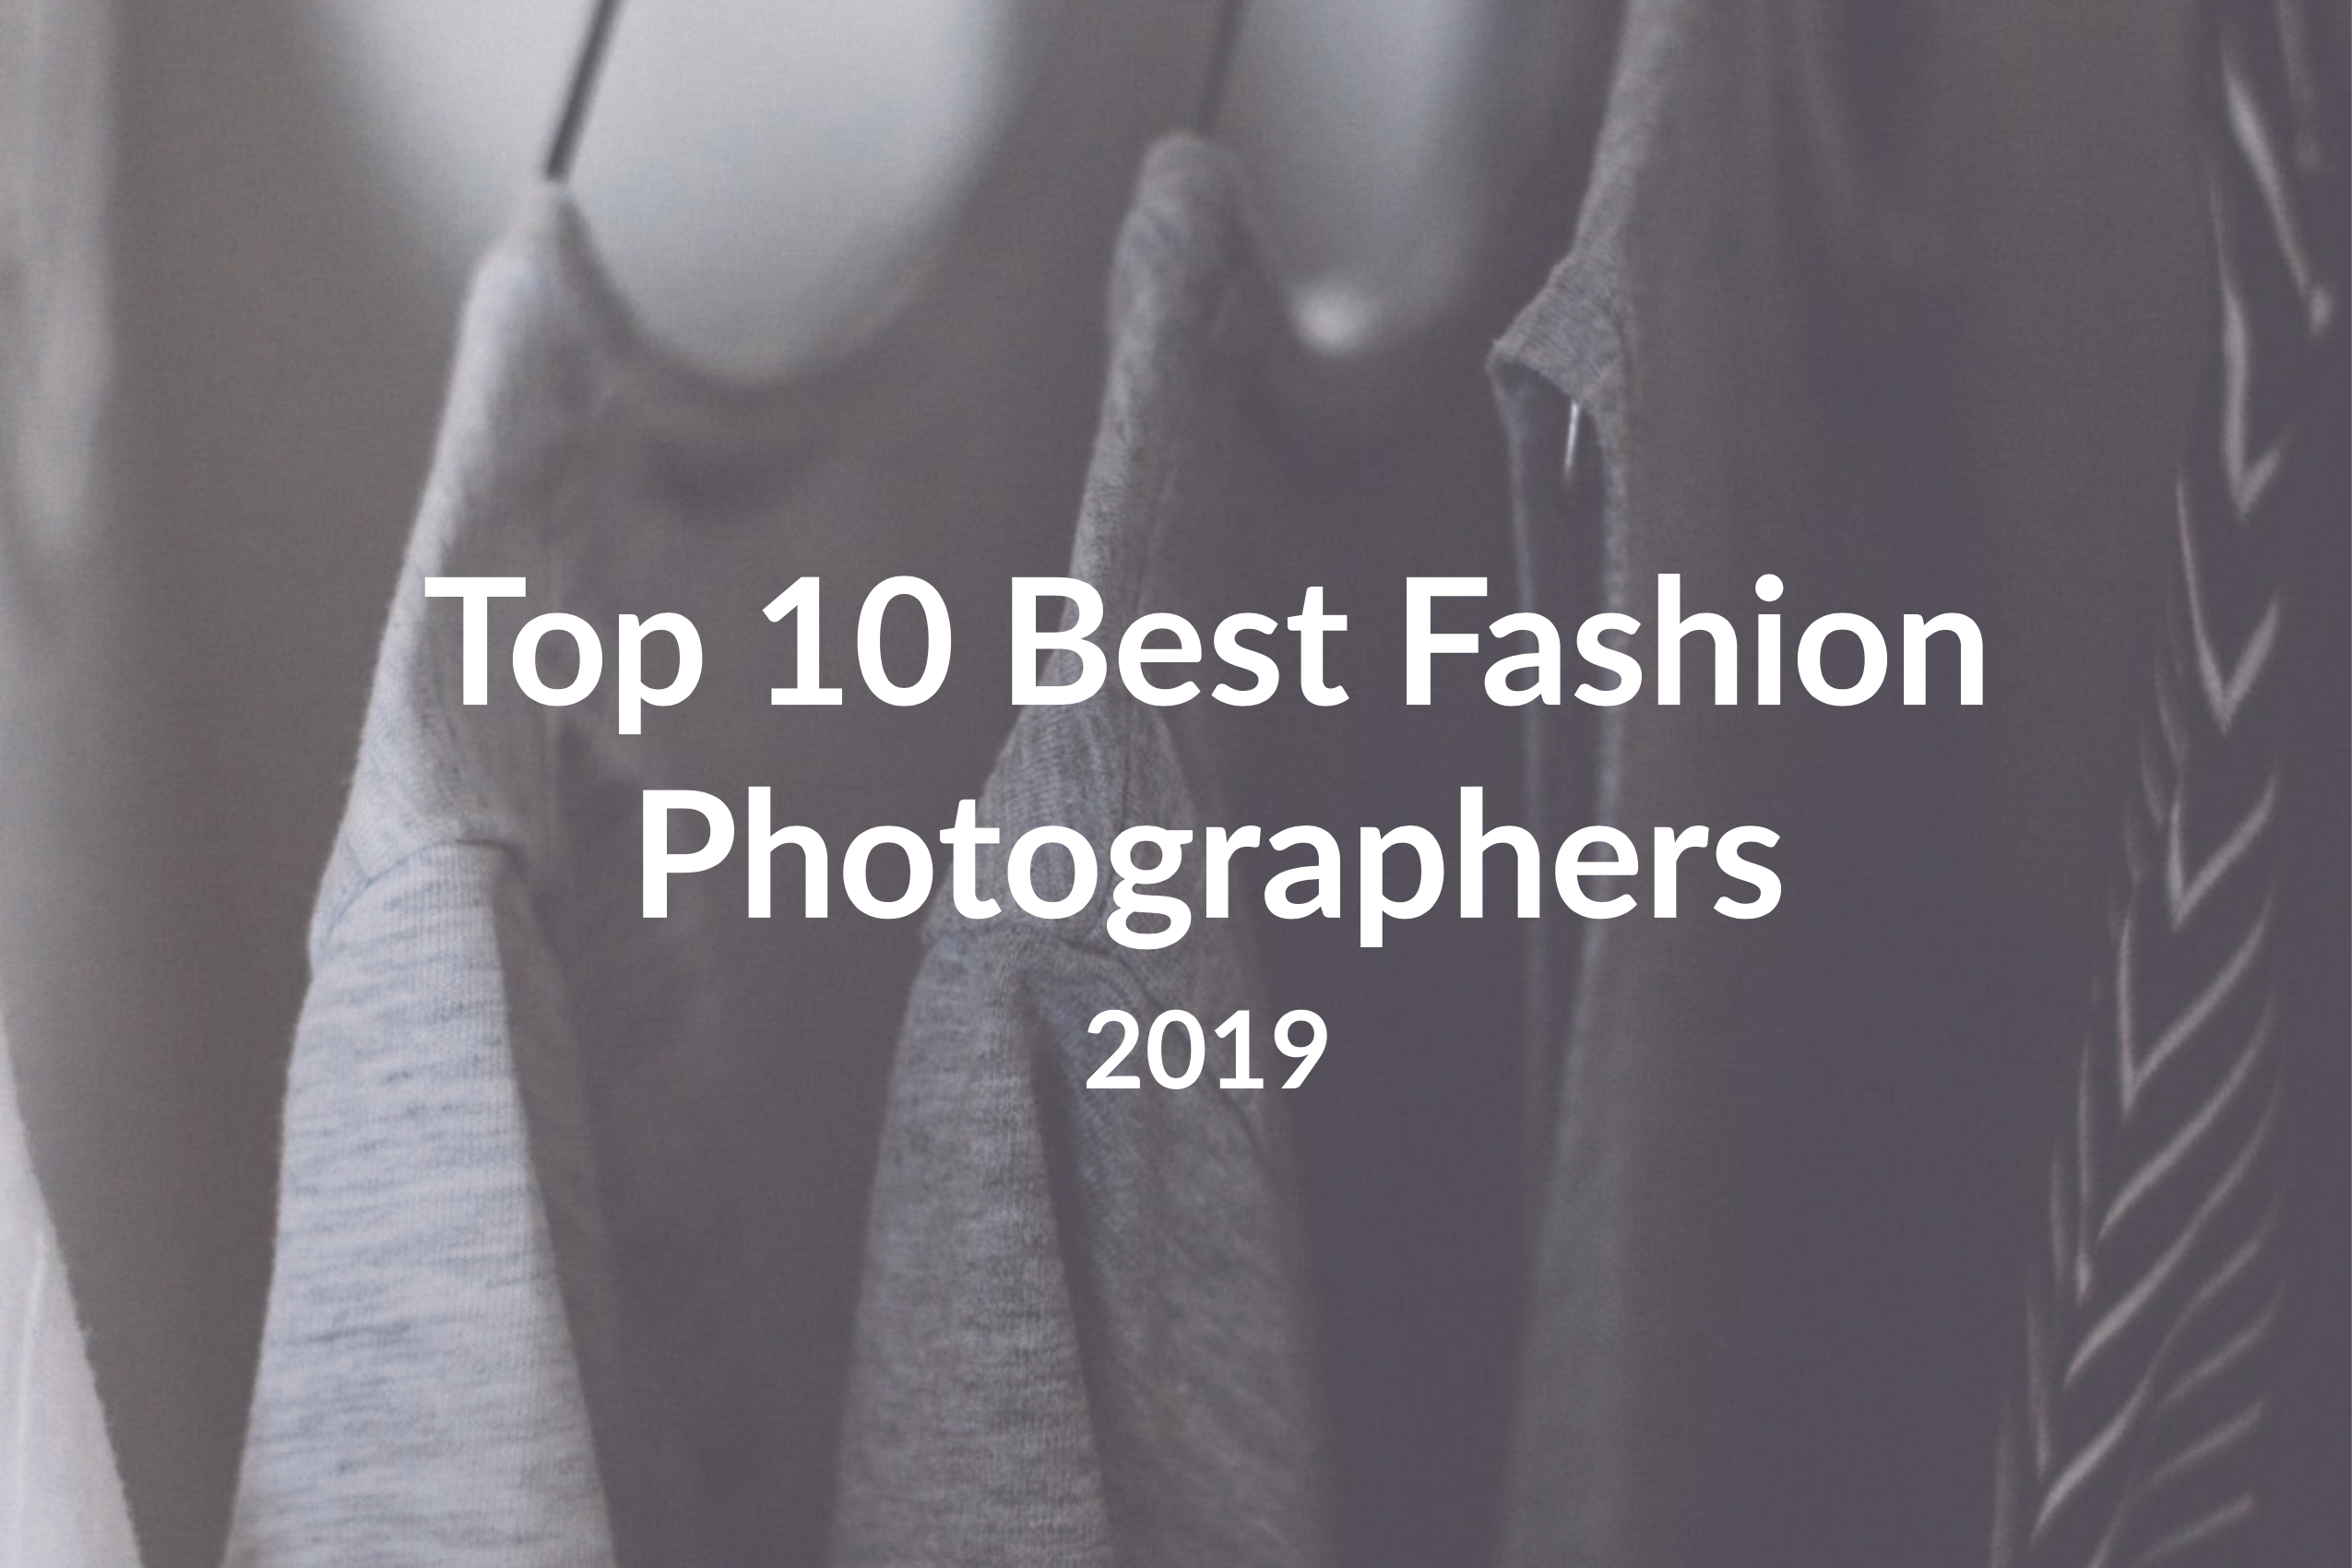 Top 10 Best Fashion Photographers to Follow in 2019